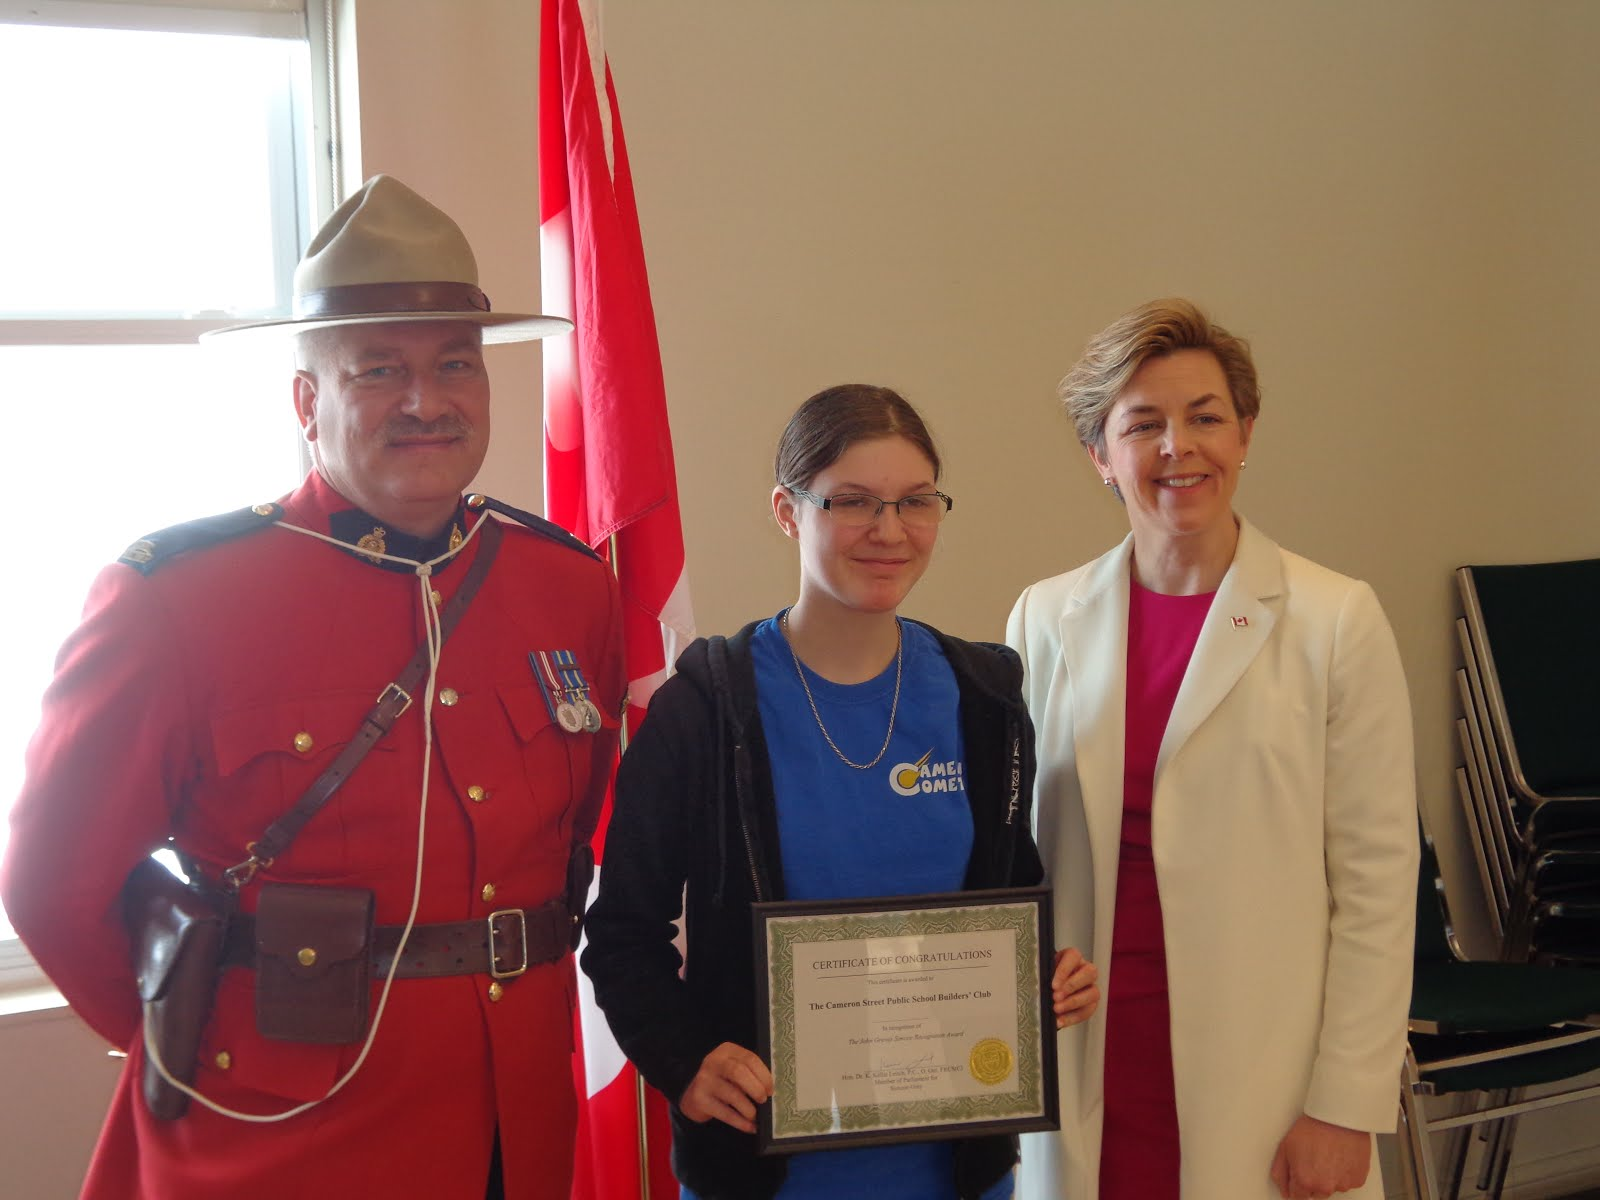 John Simcoe Recognition Award